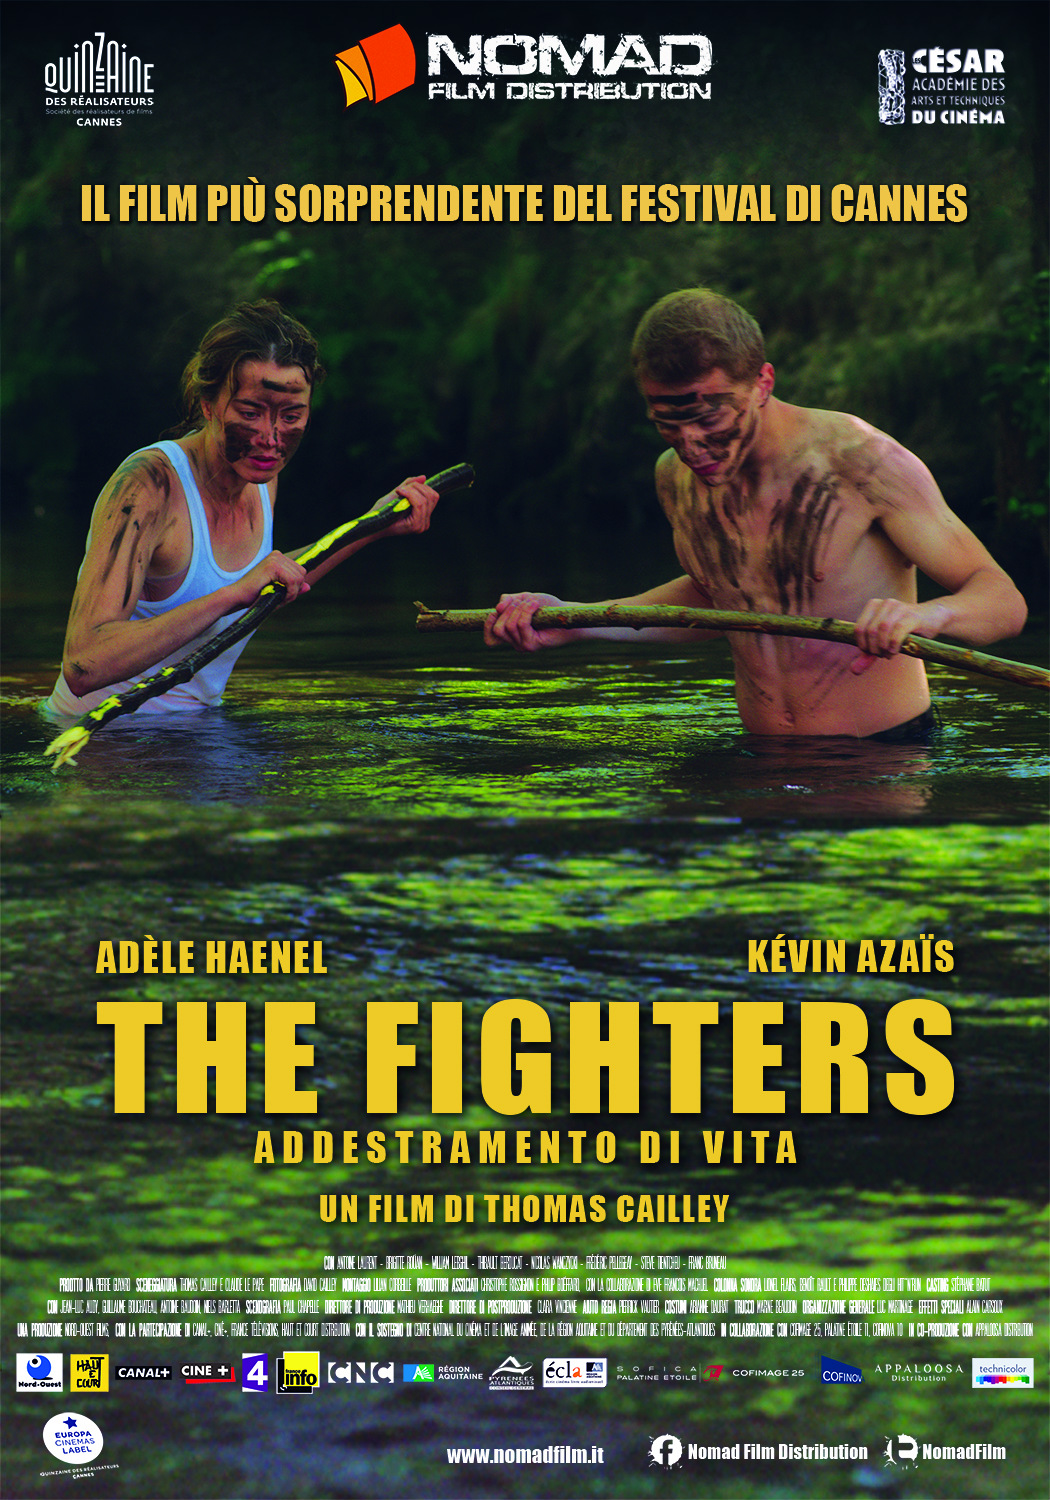 The Fighters – Addestramento di vita